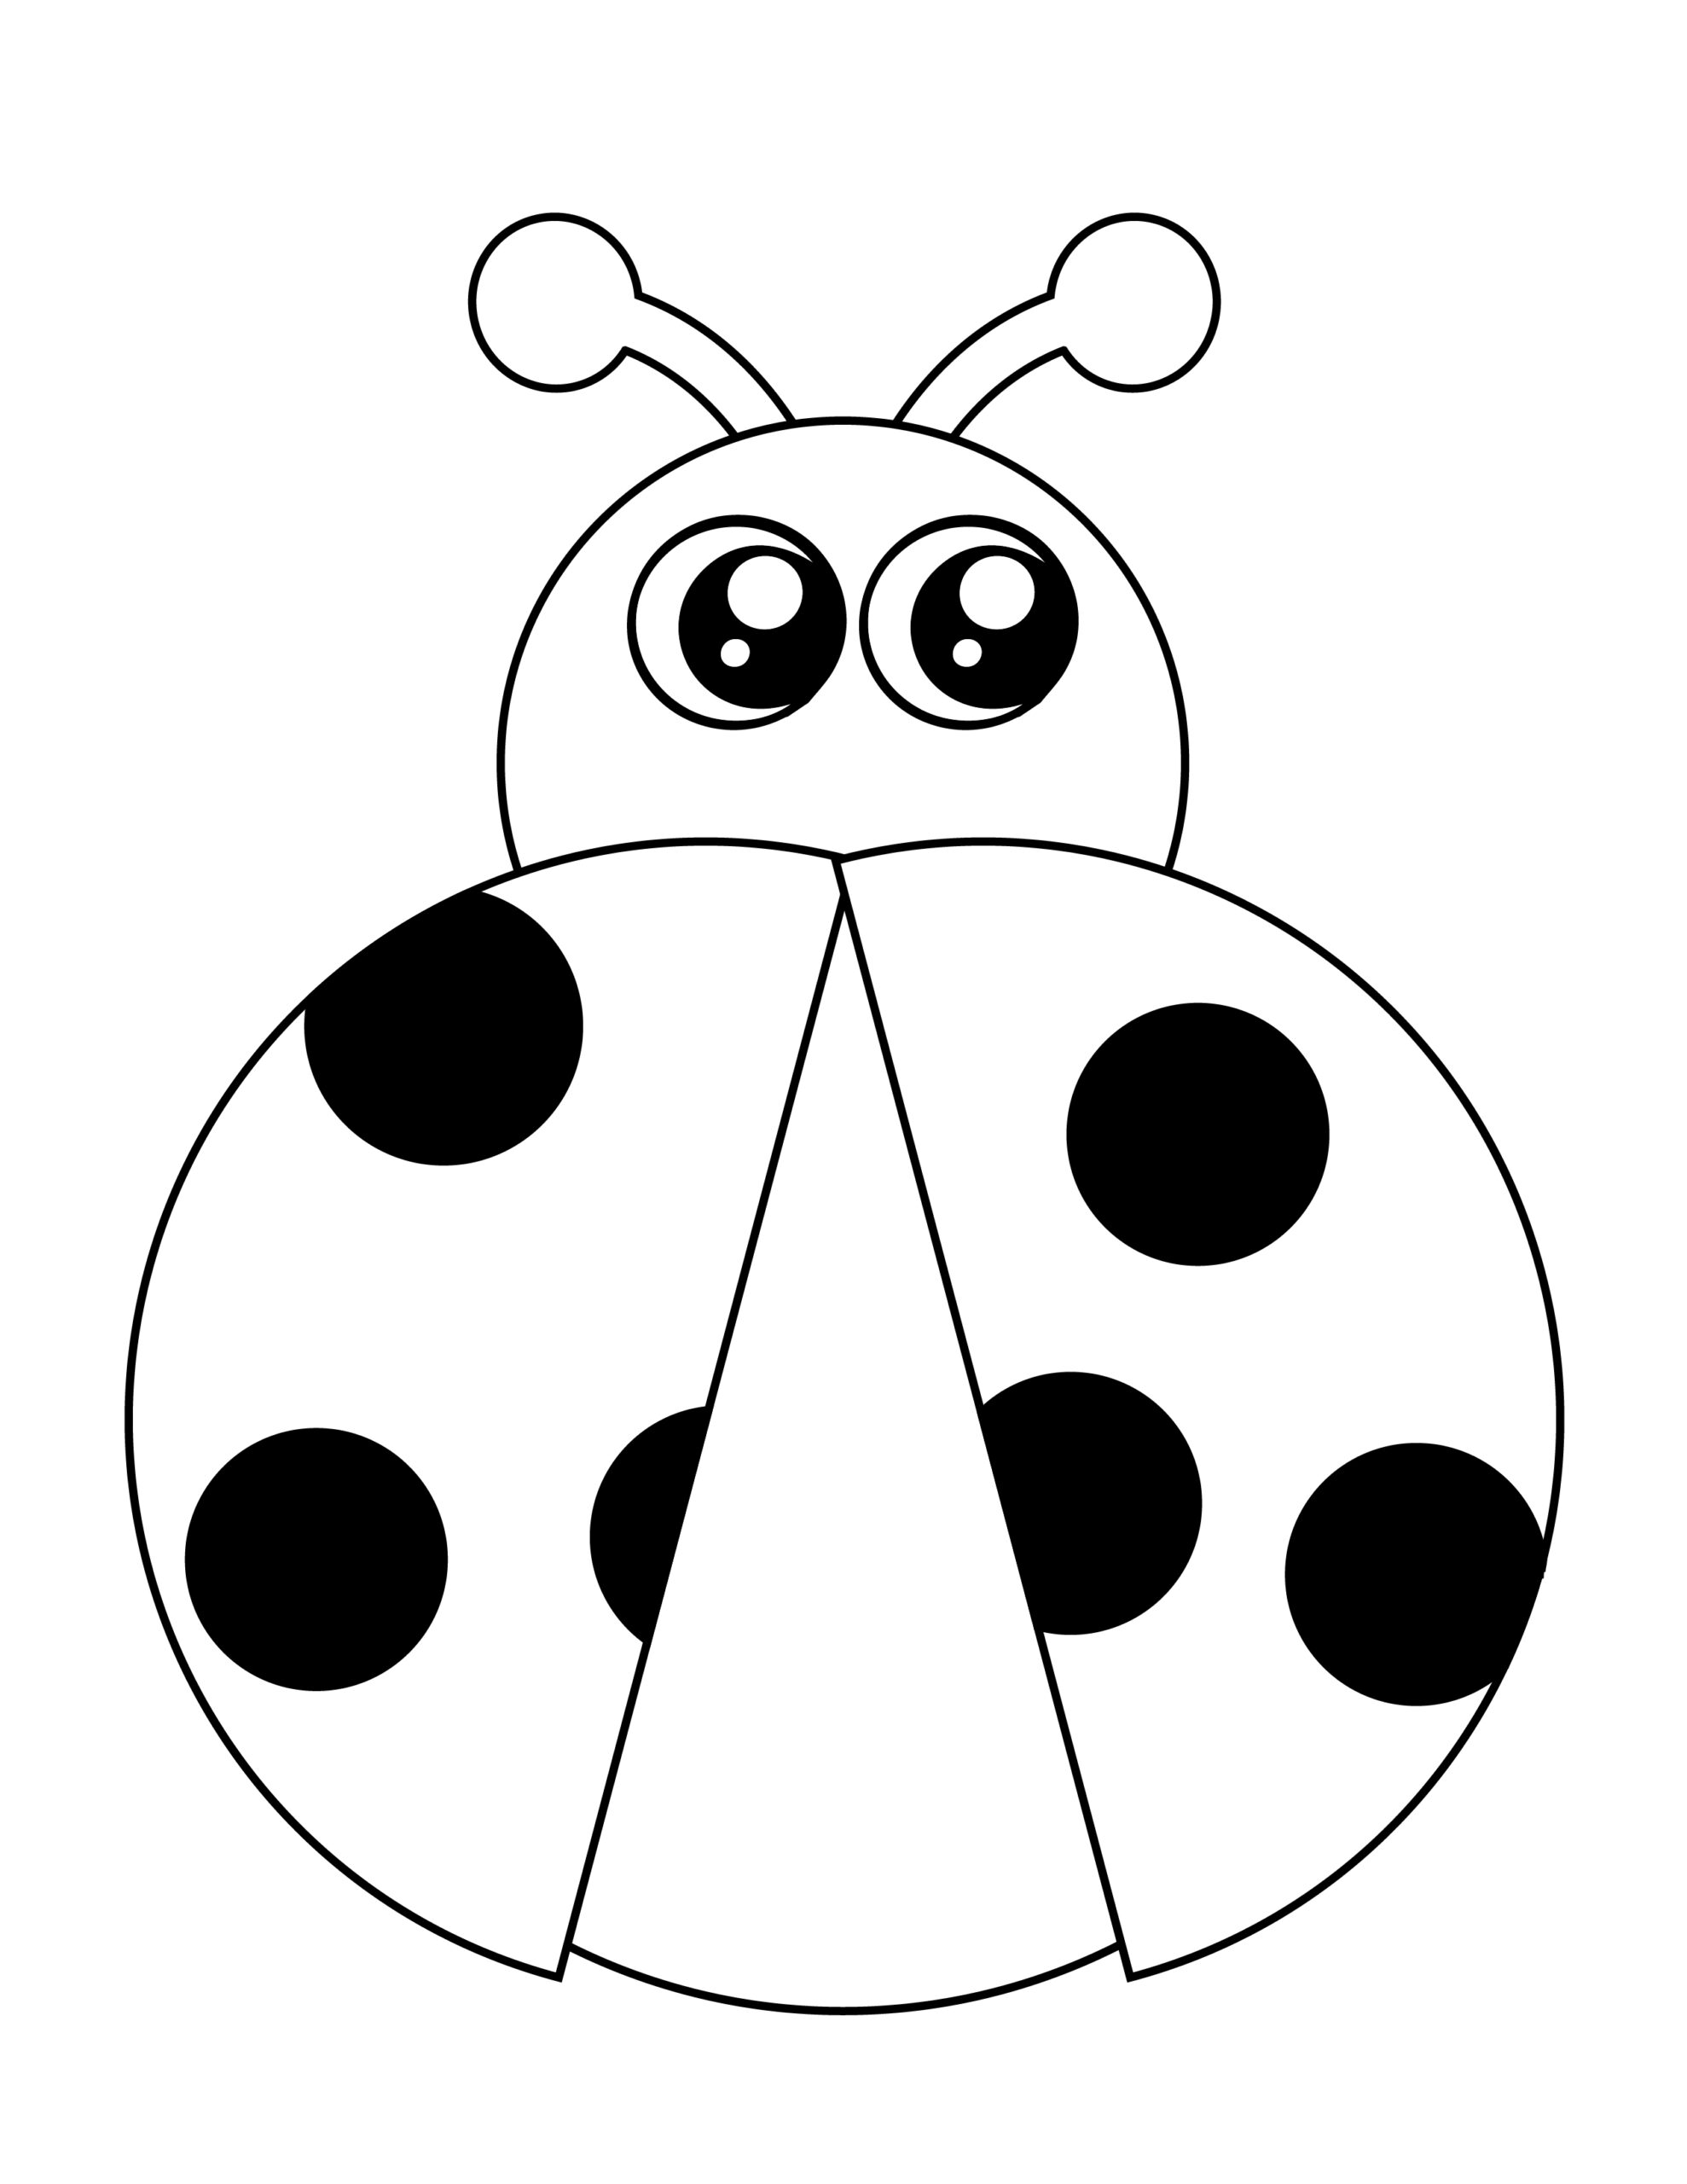 Printable lady bug template for summer template crafts for kids, preschoolers and toddlers